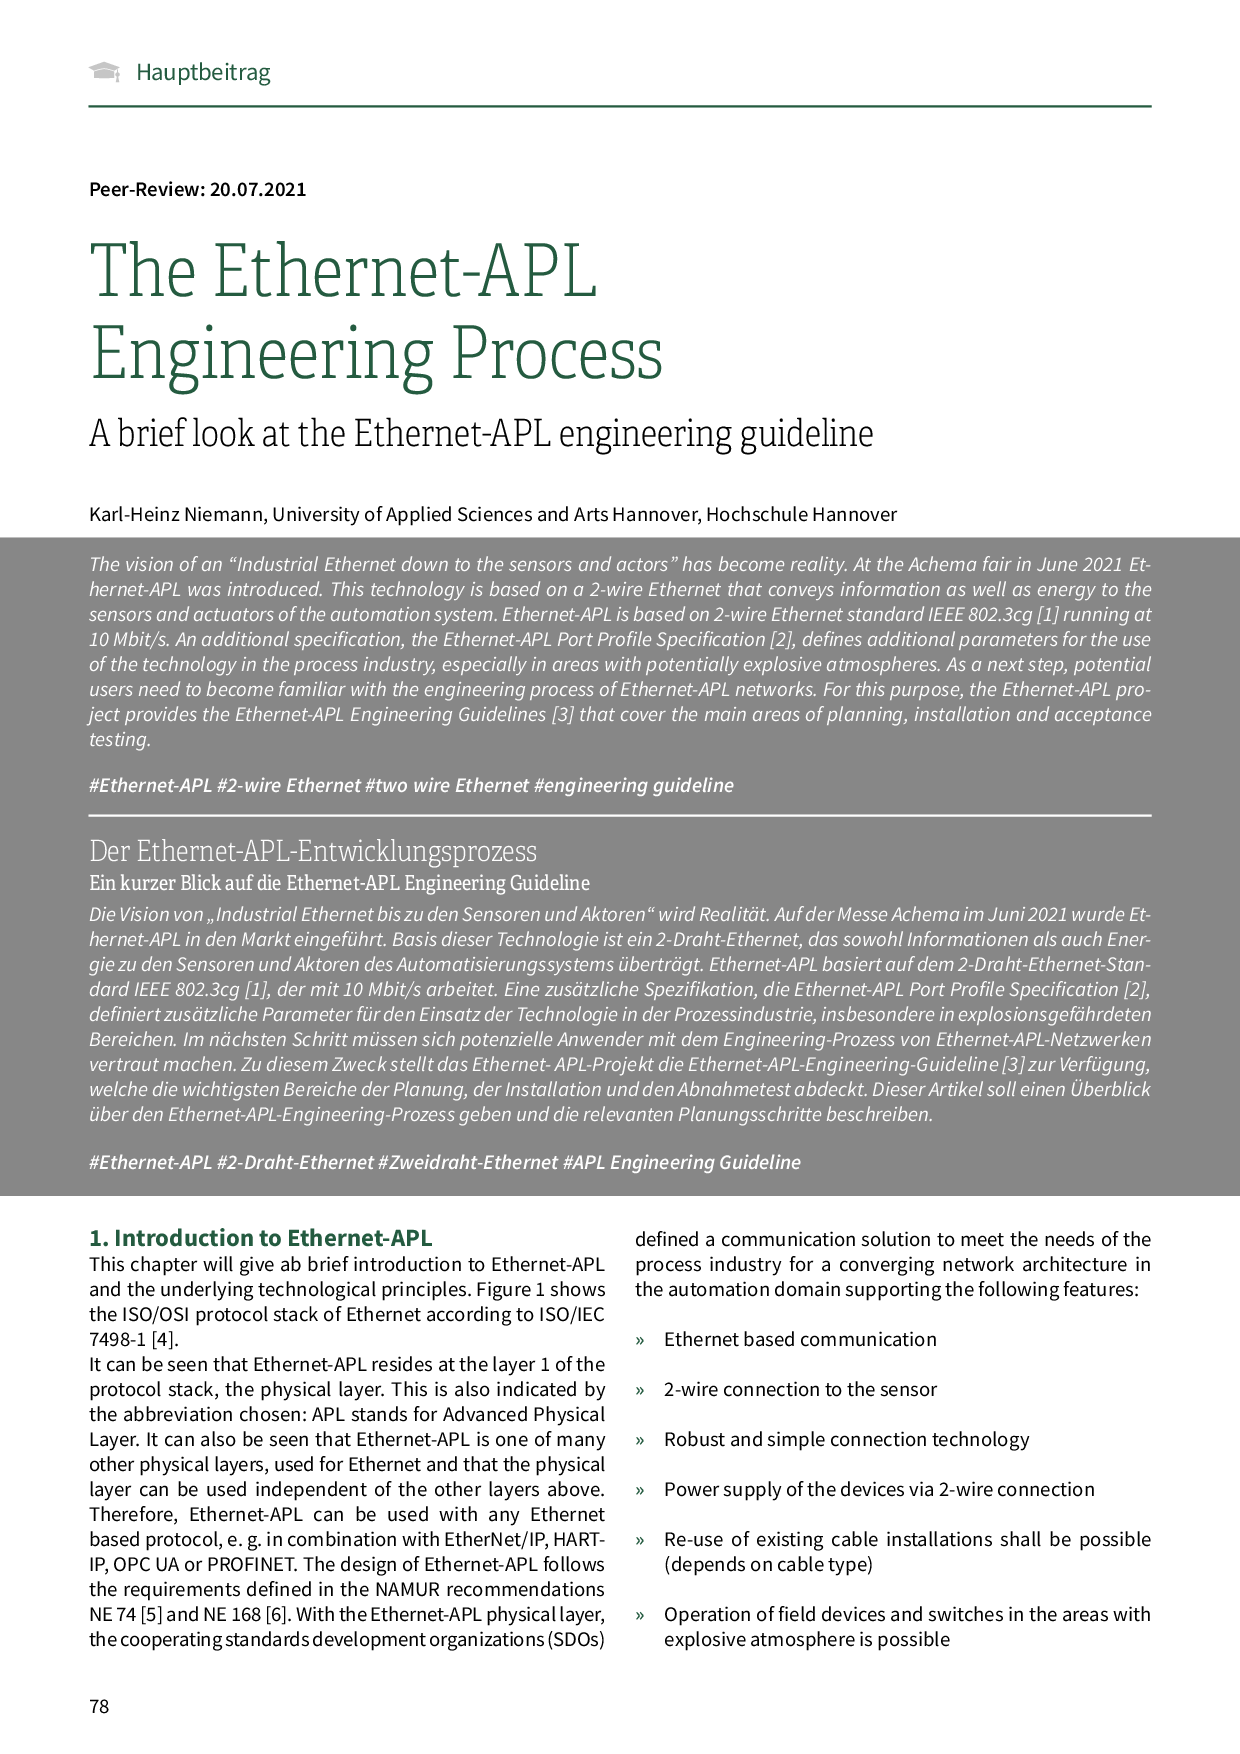 The Ethernet-APL Engineering Process